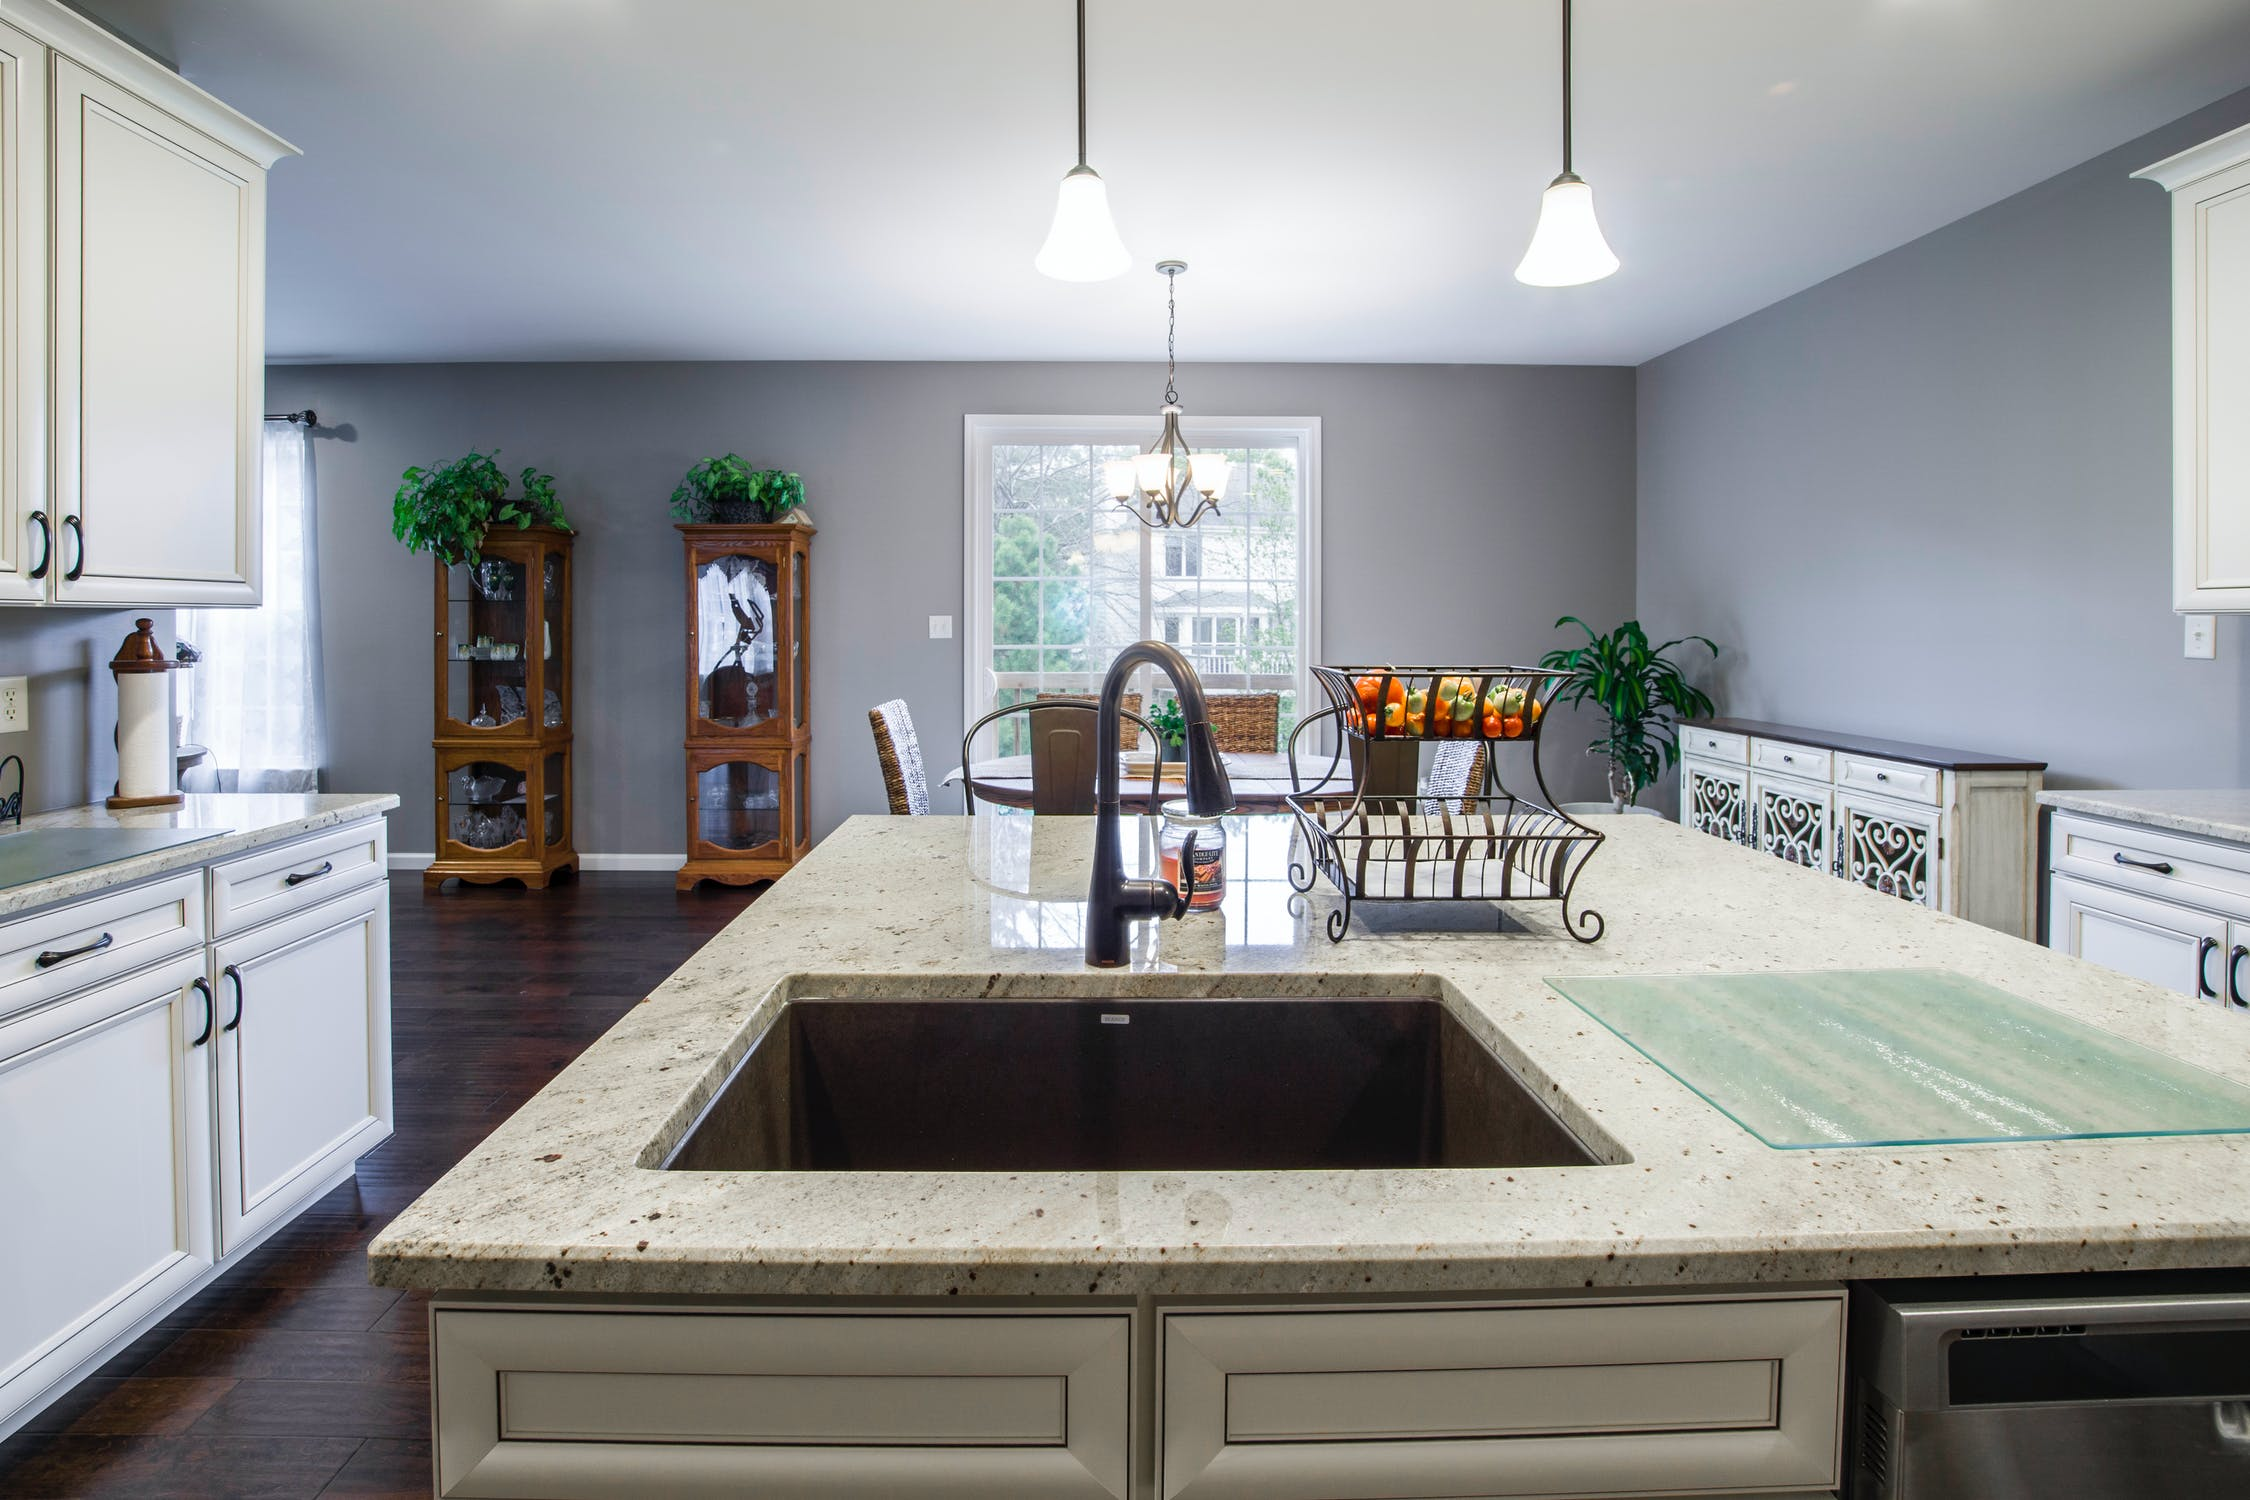 Common Kitchen Problems Found In the Home Inspection Report